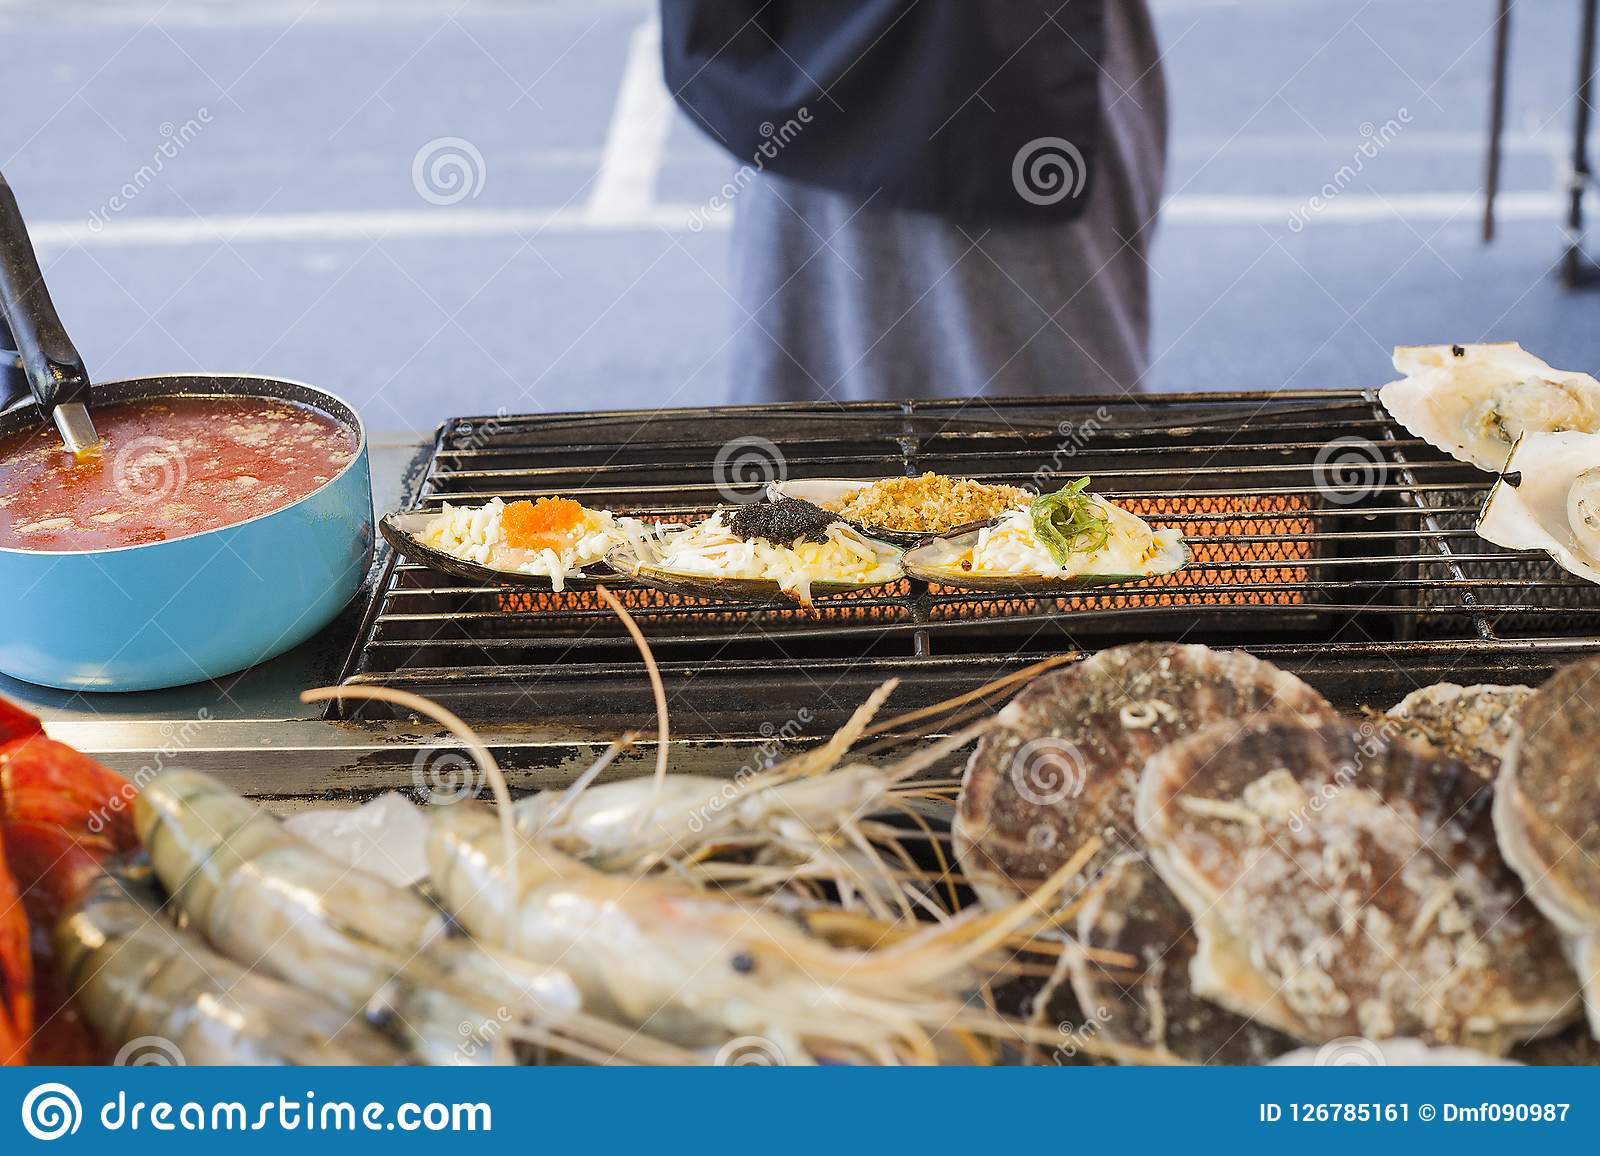 Scallops Grilled On Street Market In Phuket Thailand Stock Image